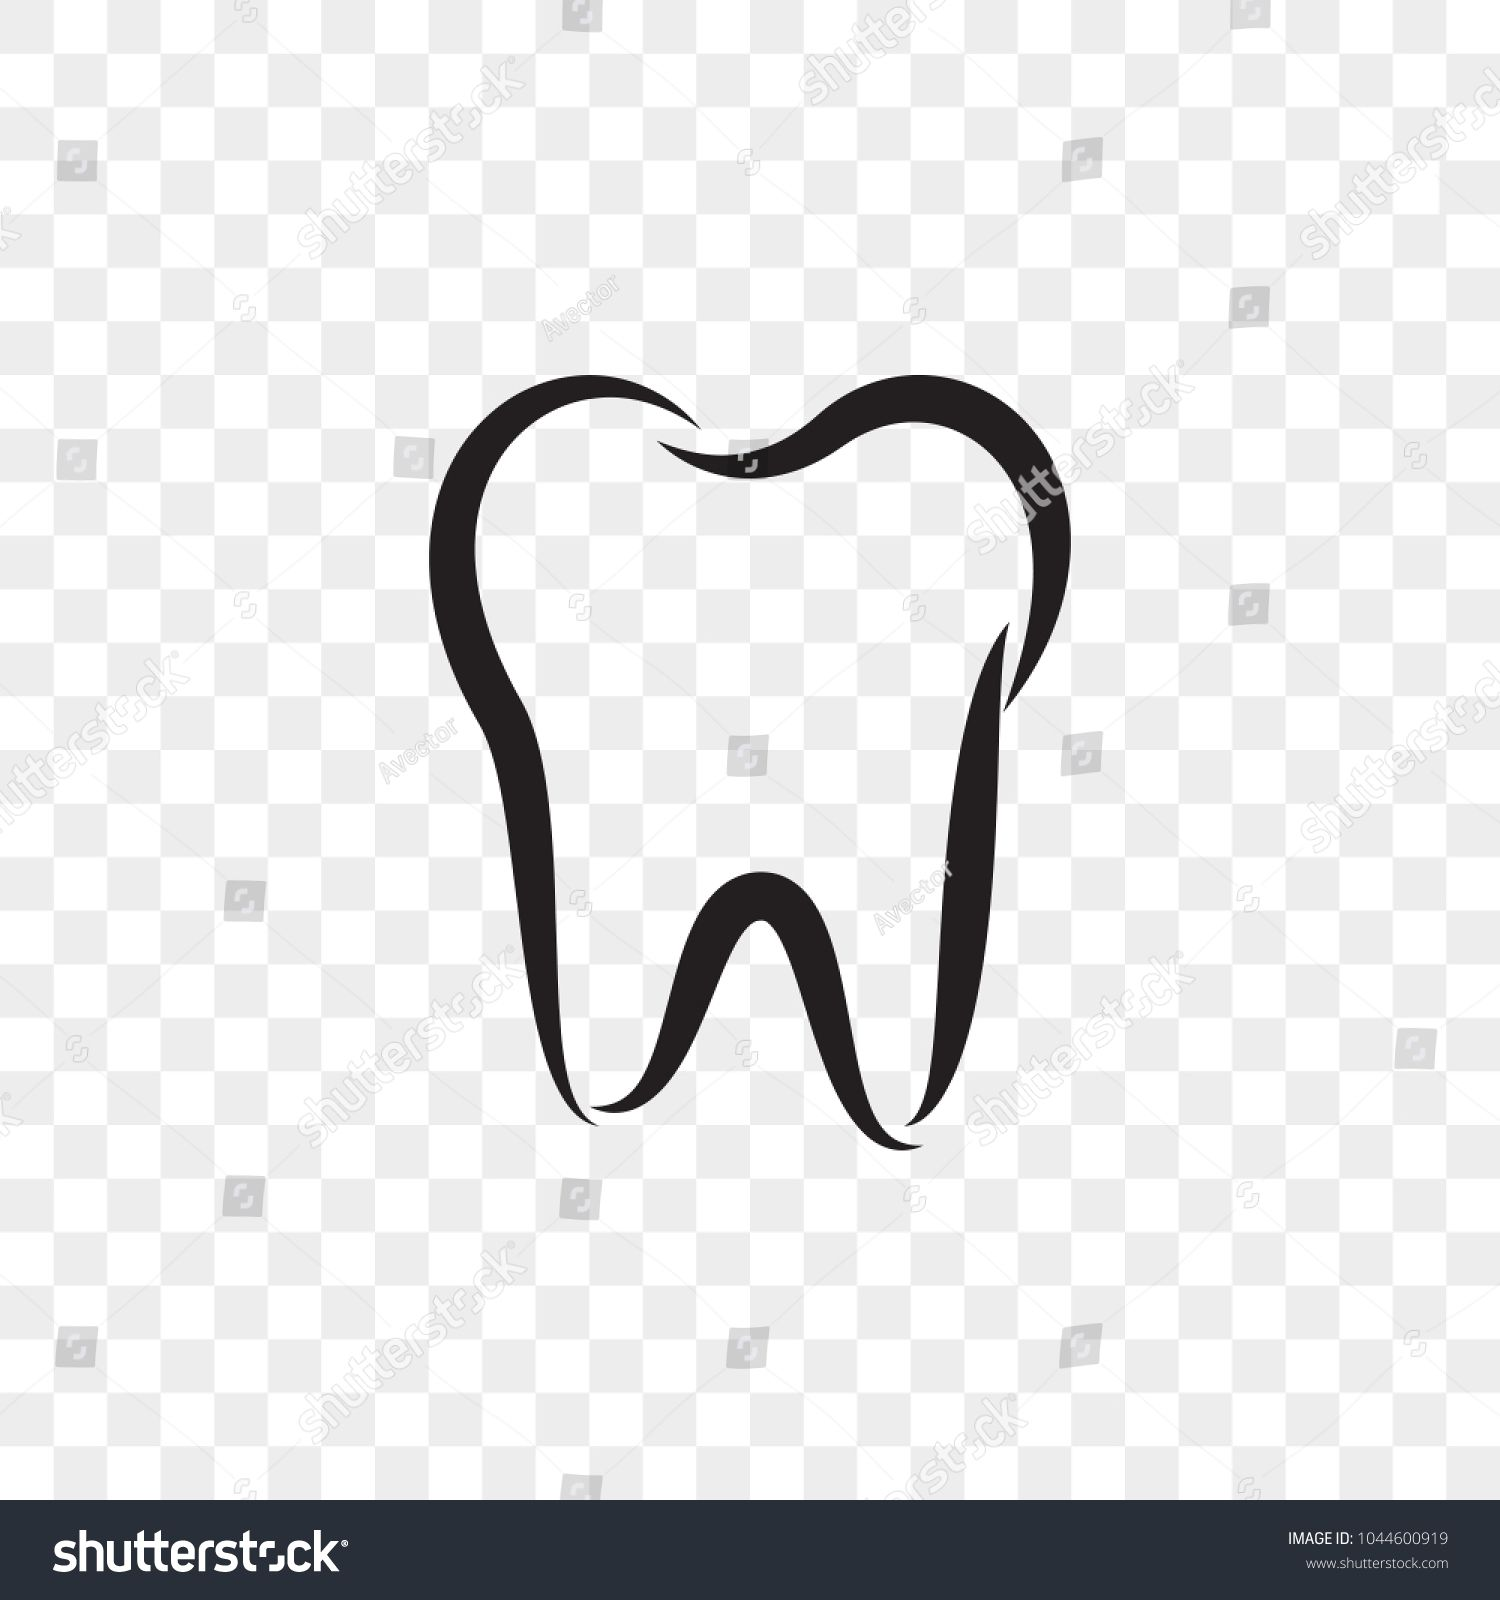 Tooth logo icon for dentist or stomatology dental care